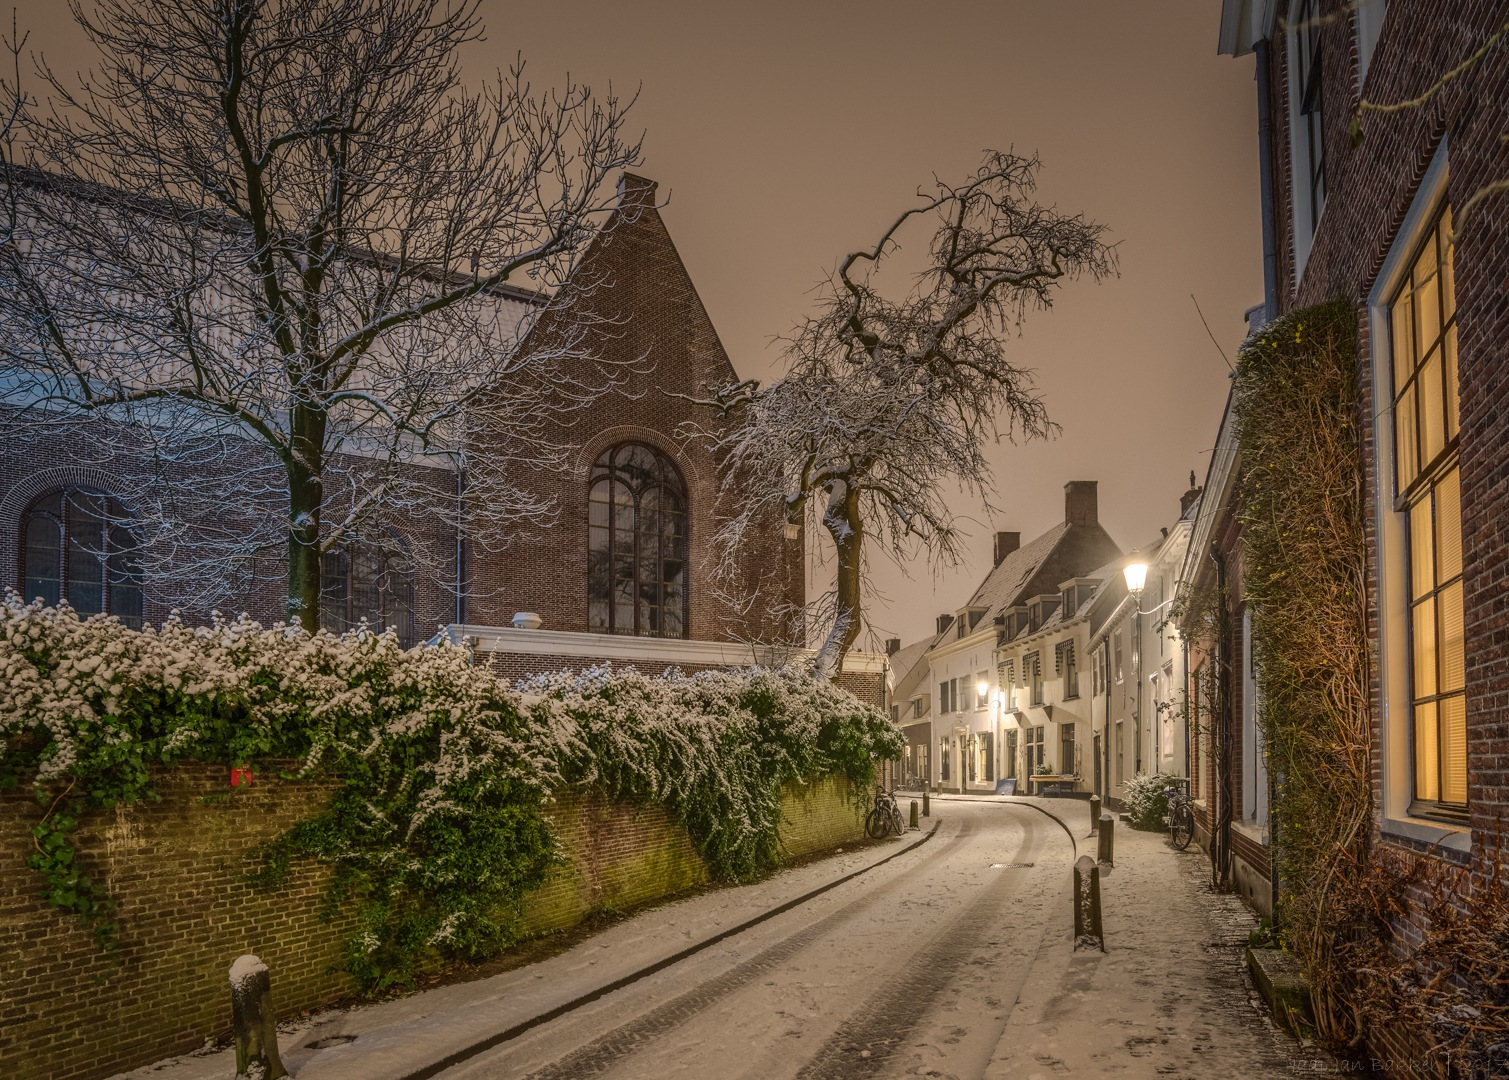 Winter in Amersfoort by Jaap Jan Bakker